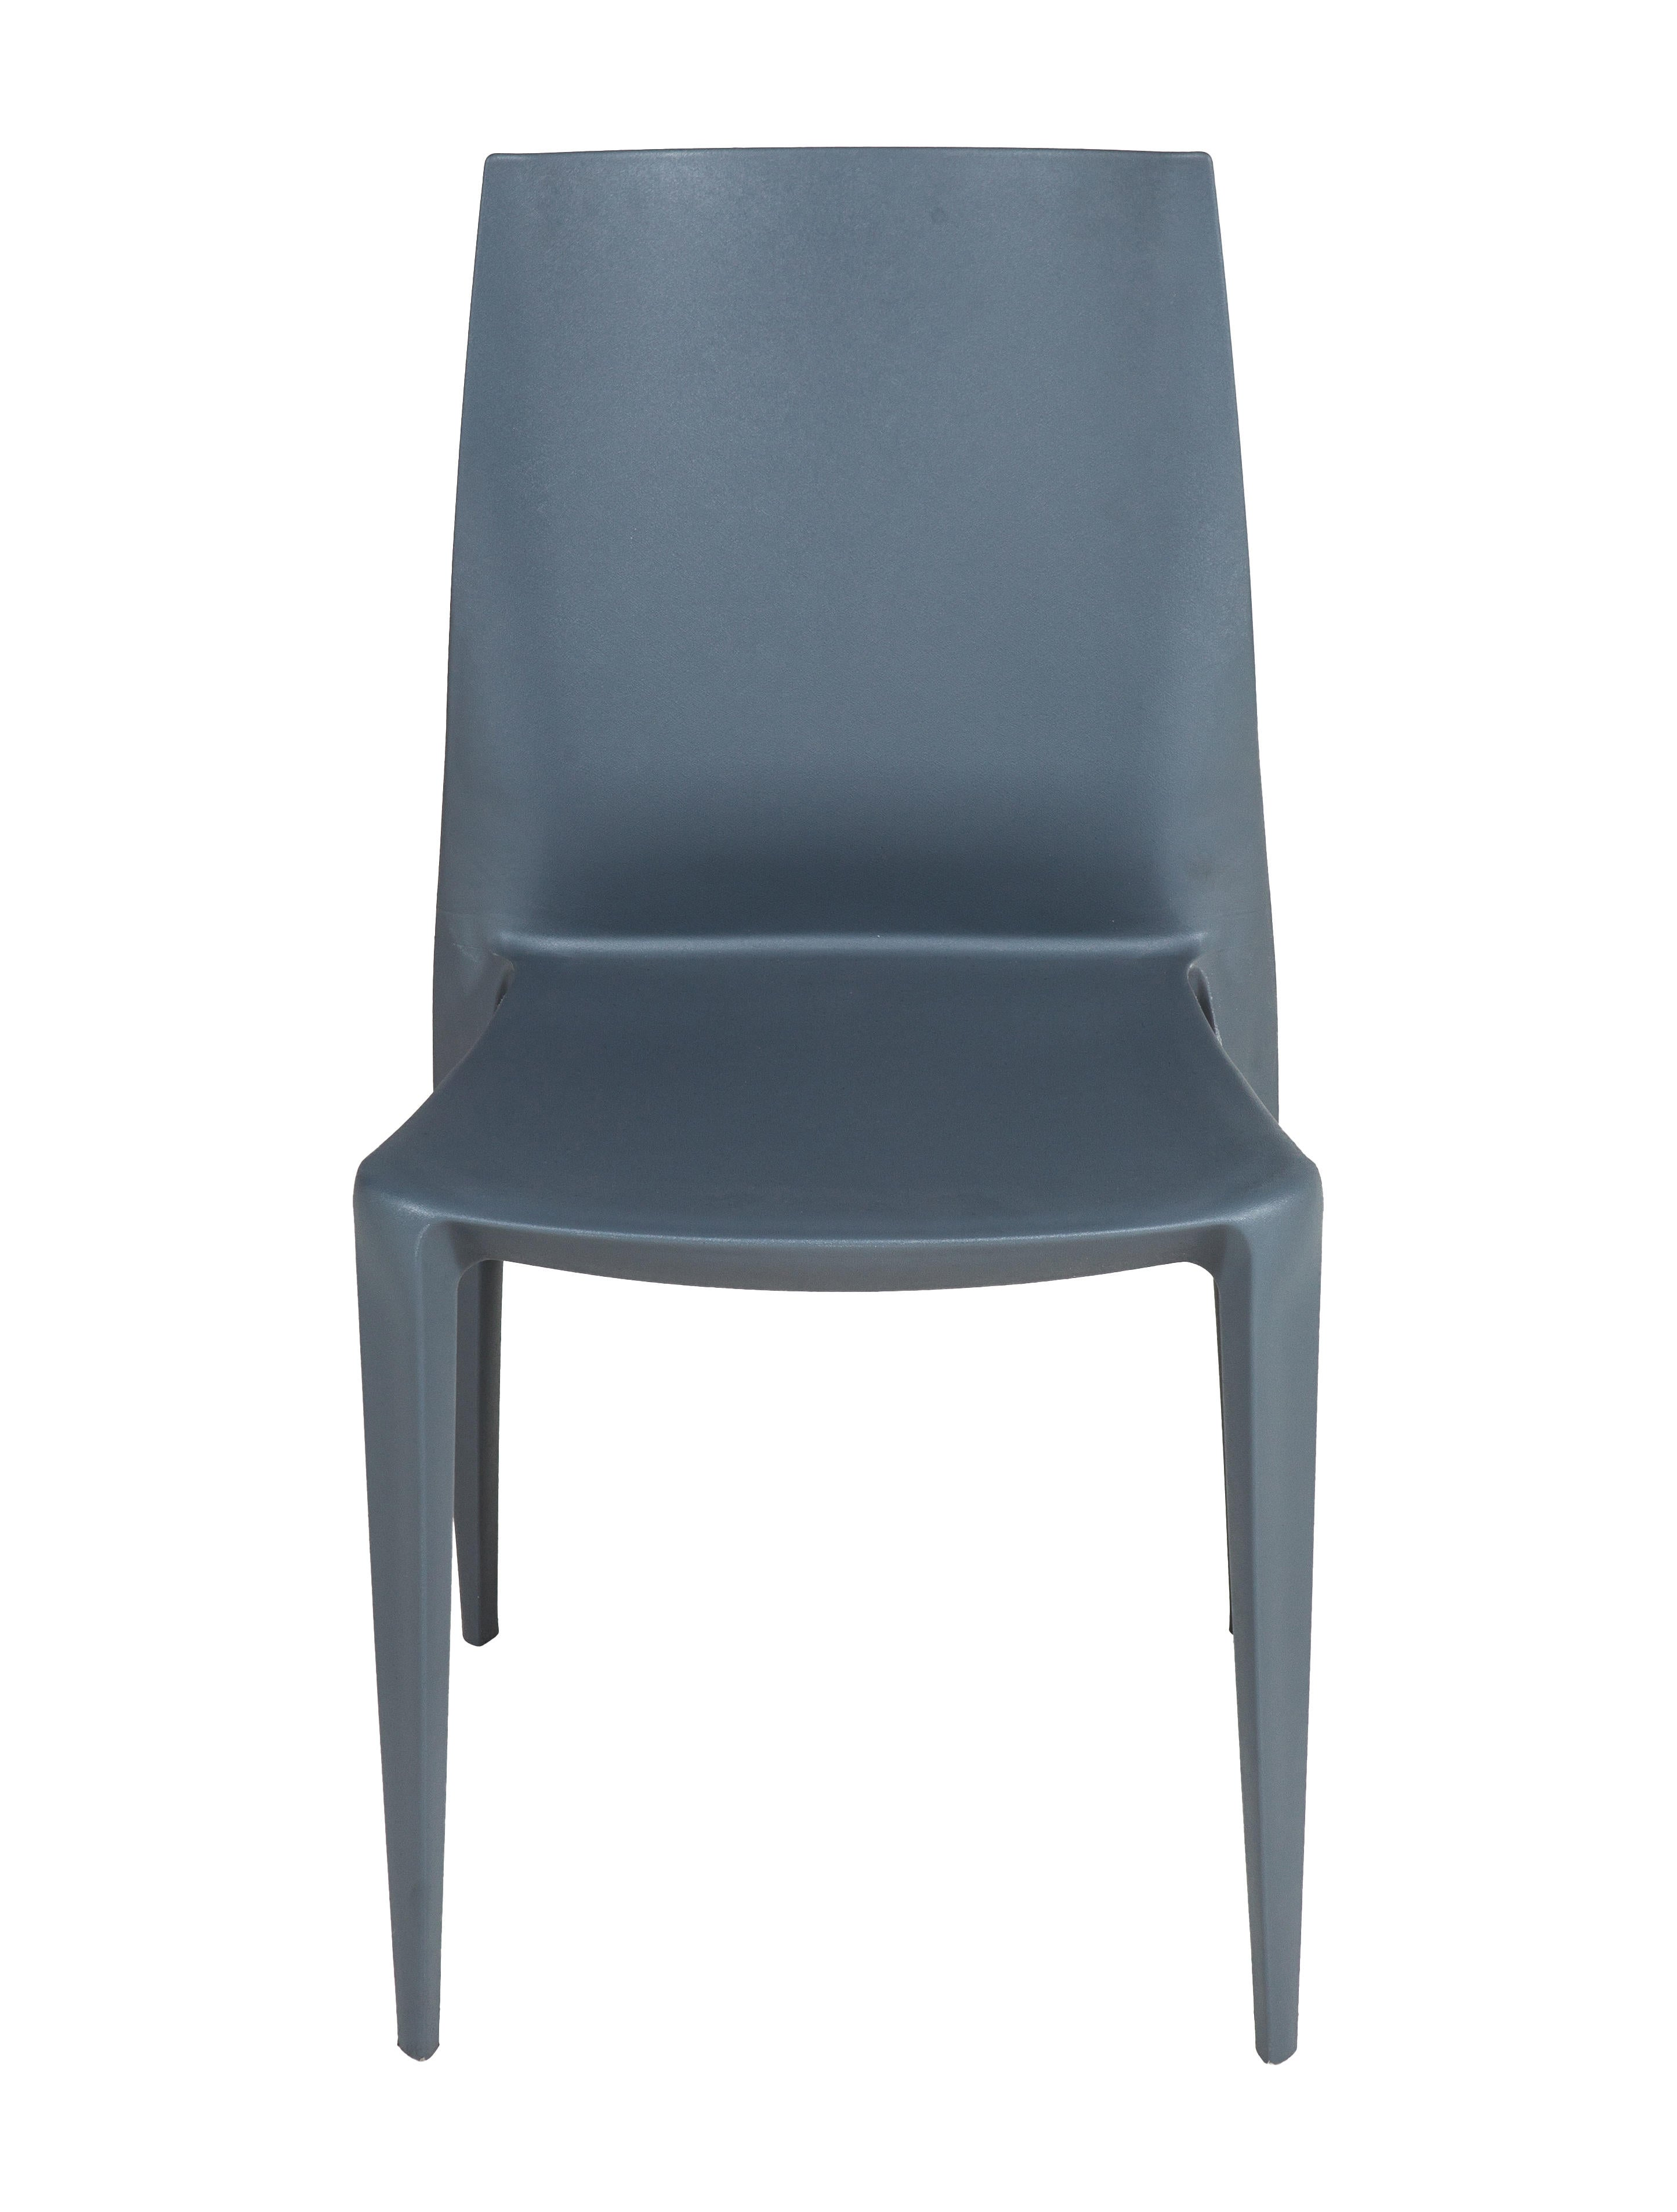 Heller Bellini Chair Furniture Hhher20004 The Realreal